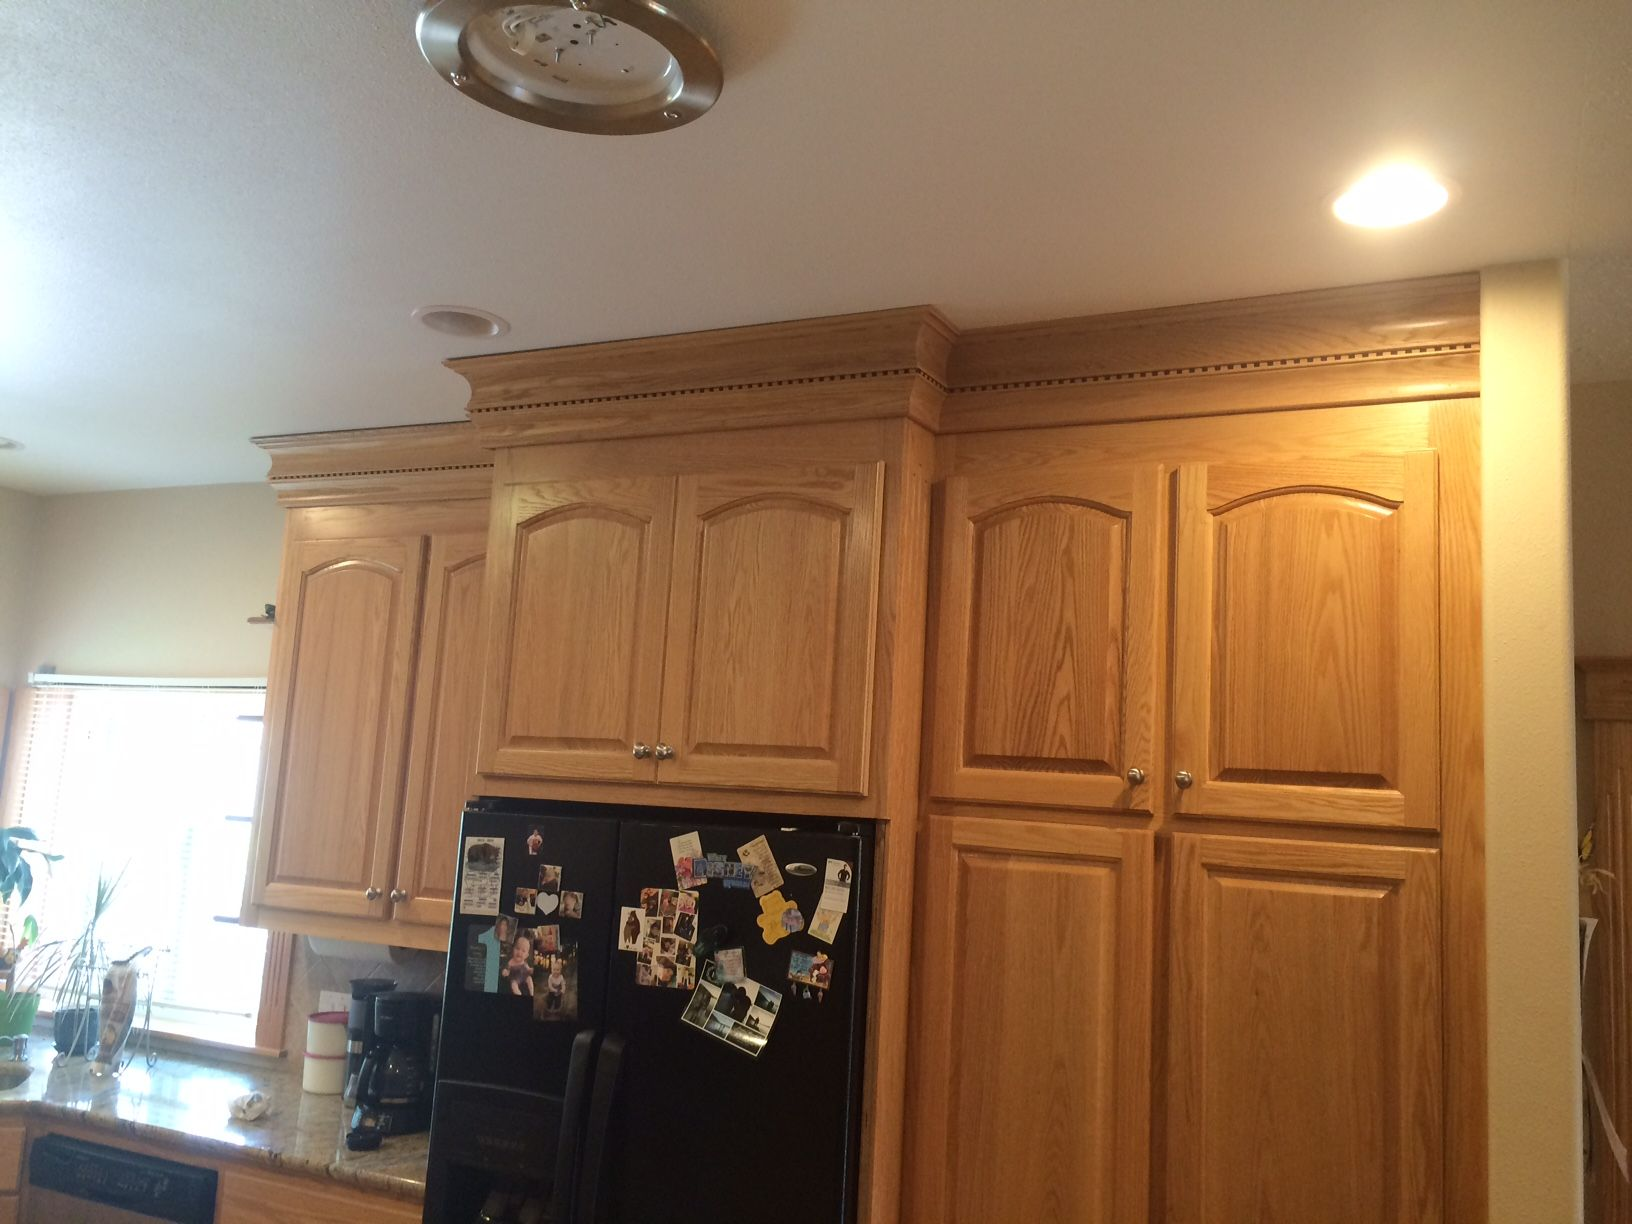 Pin by Cabinet Technology on Custom Crown Molding | Red ...